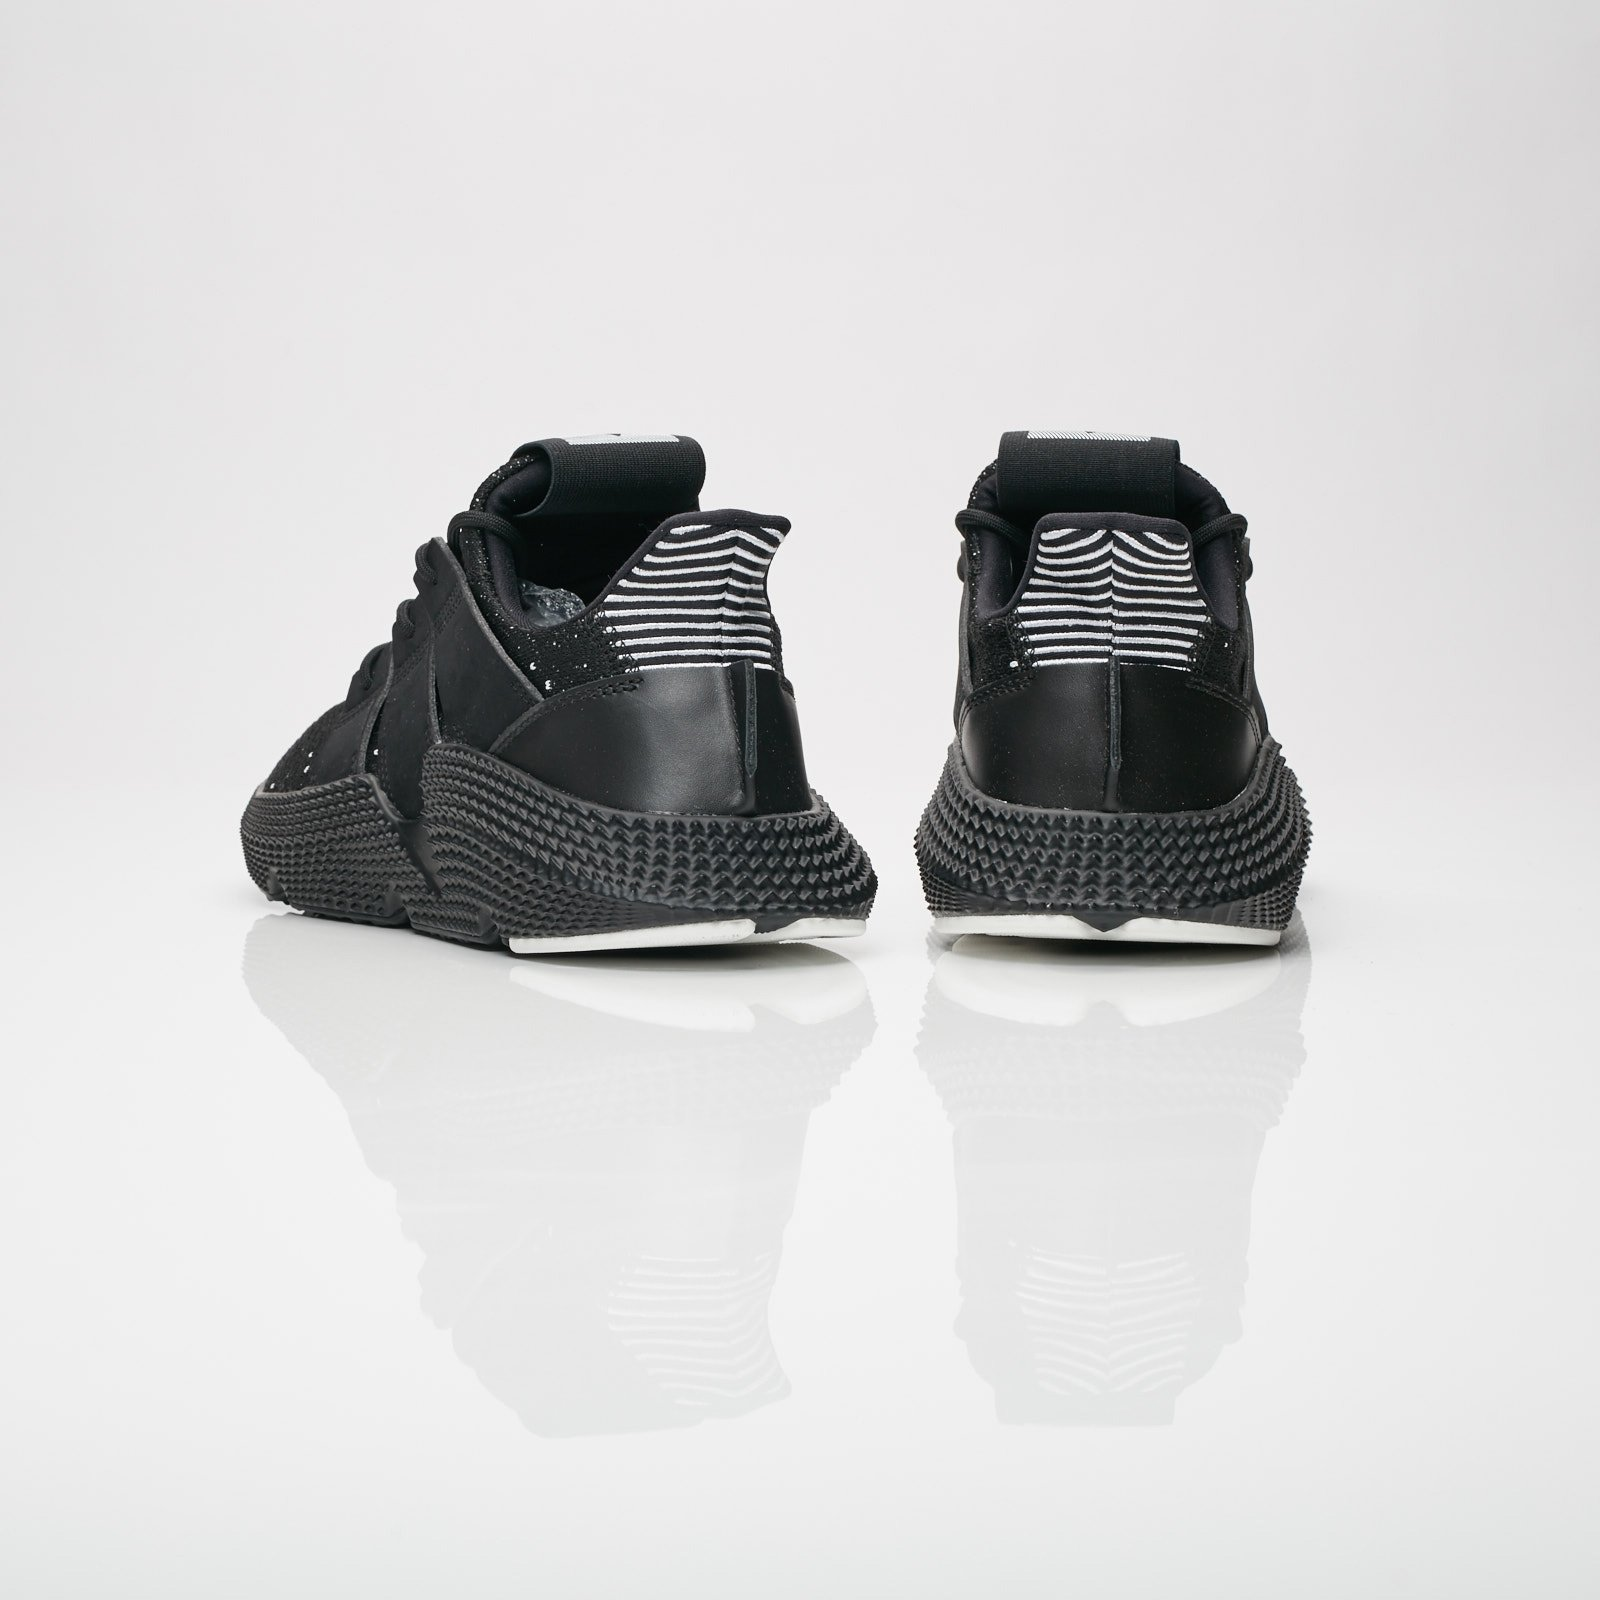 9fba52e51bef adidas Originals Prophere adidas Originals Prophere ...